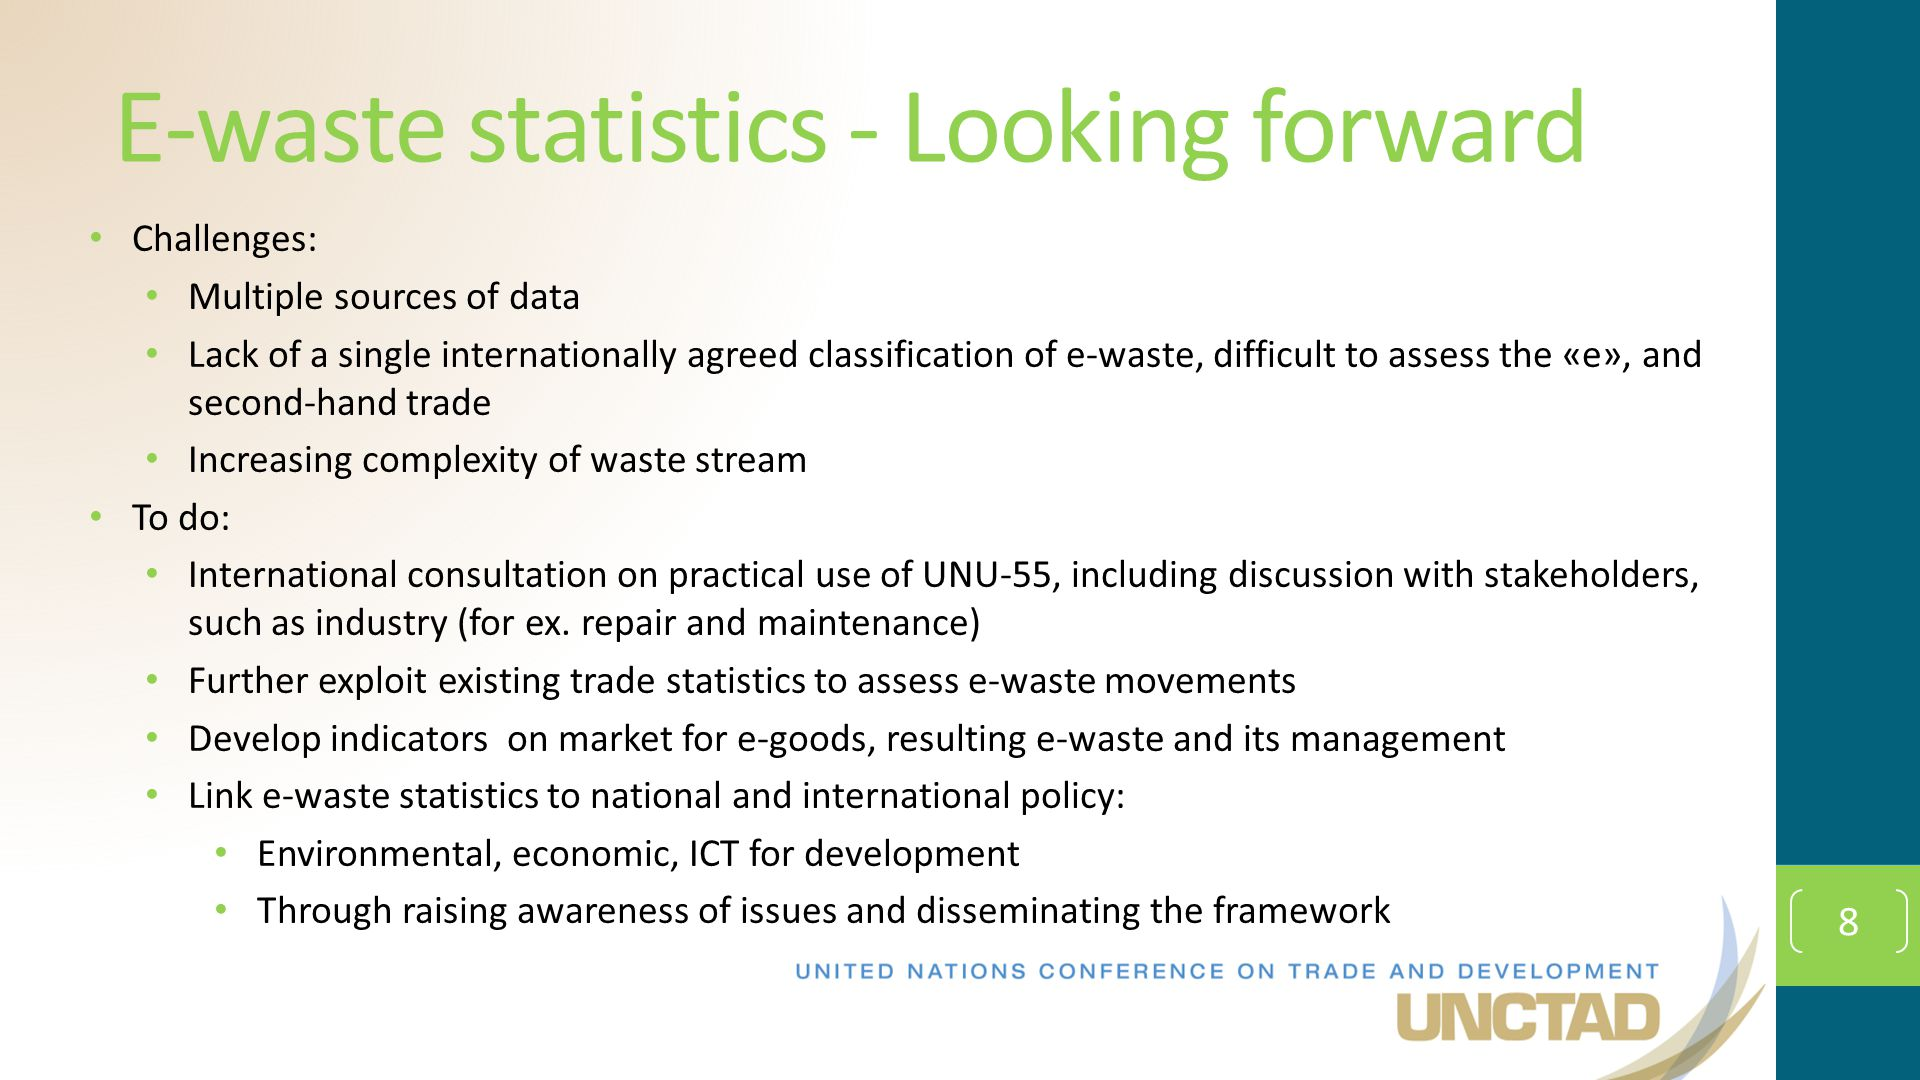 8 E-waste statistics - Looking forward Challenges: Multiple sources of data Lack of a single internationally agreed classification of e-waste, difficult to assess the «e», and second-hand trade Increasing complexity of waste stream To do: International consultation on practical use of UNU-55, including discussion with stakeholders, such as industry (for ex.